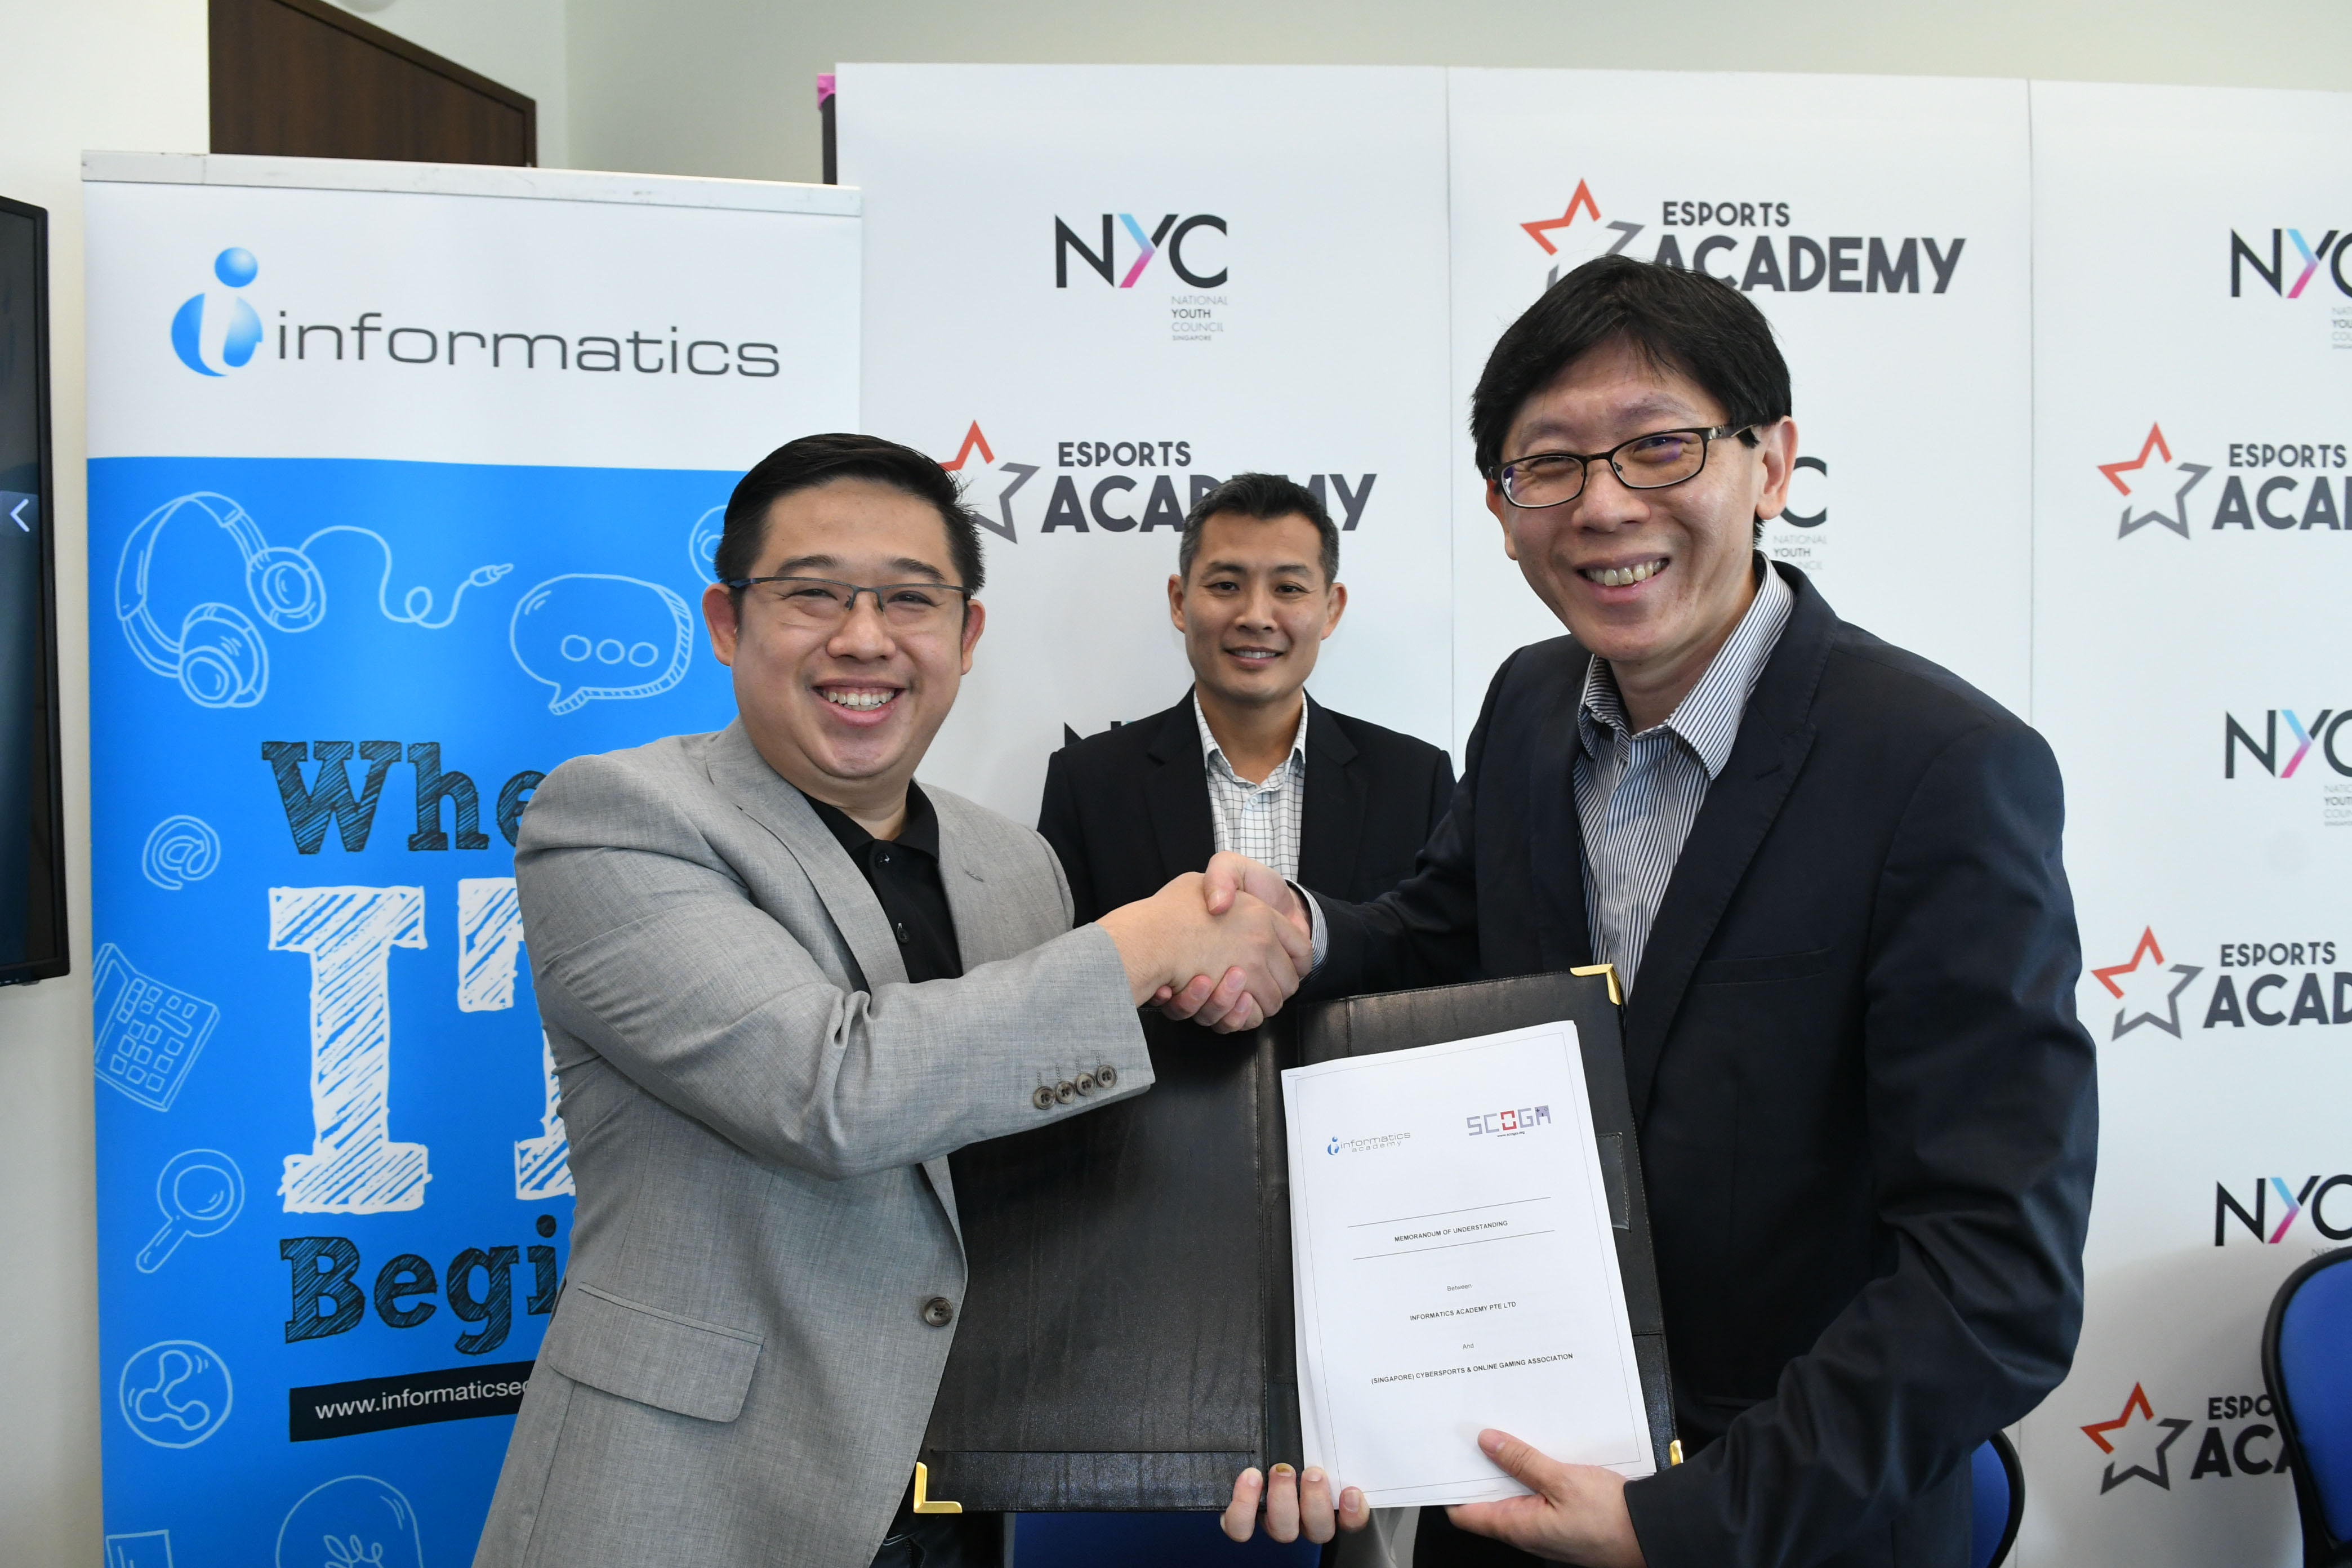 SINGAPORE – Mileage Breaks New Ground Publicising Esports